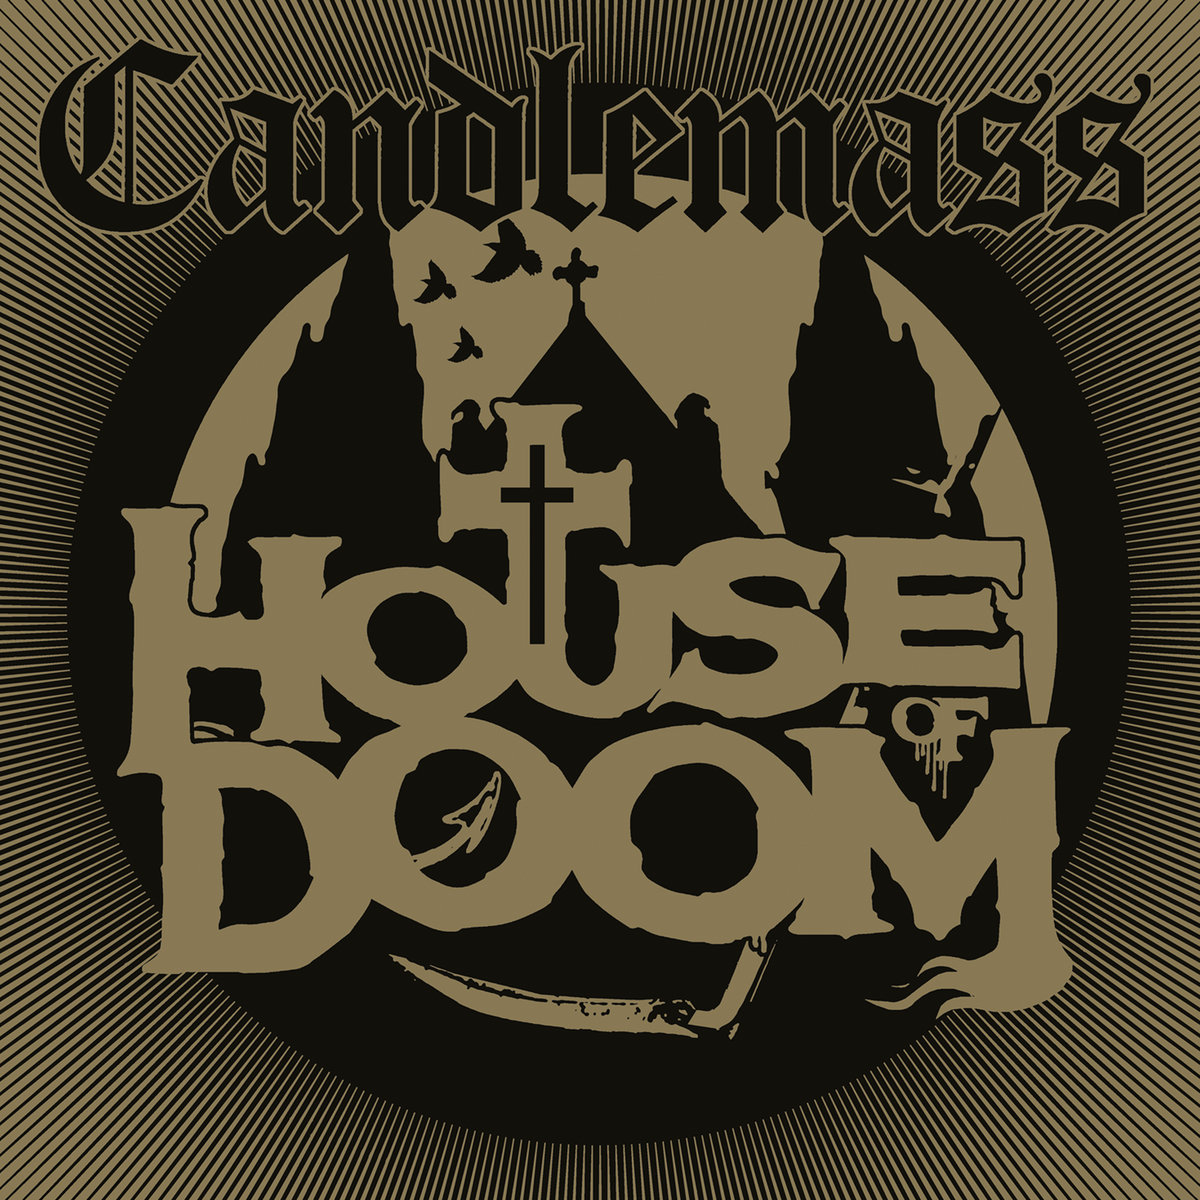 House of Doom EP by Candlemass